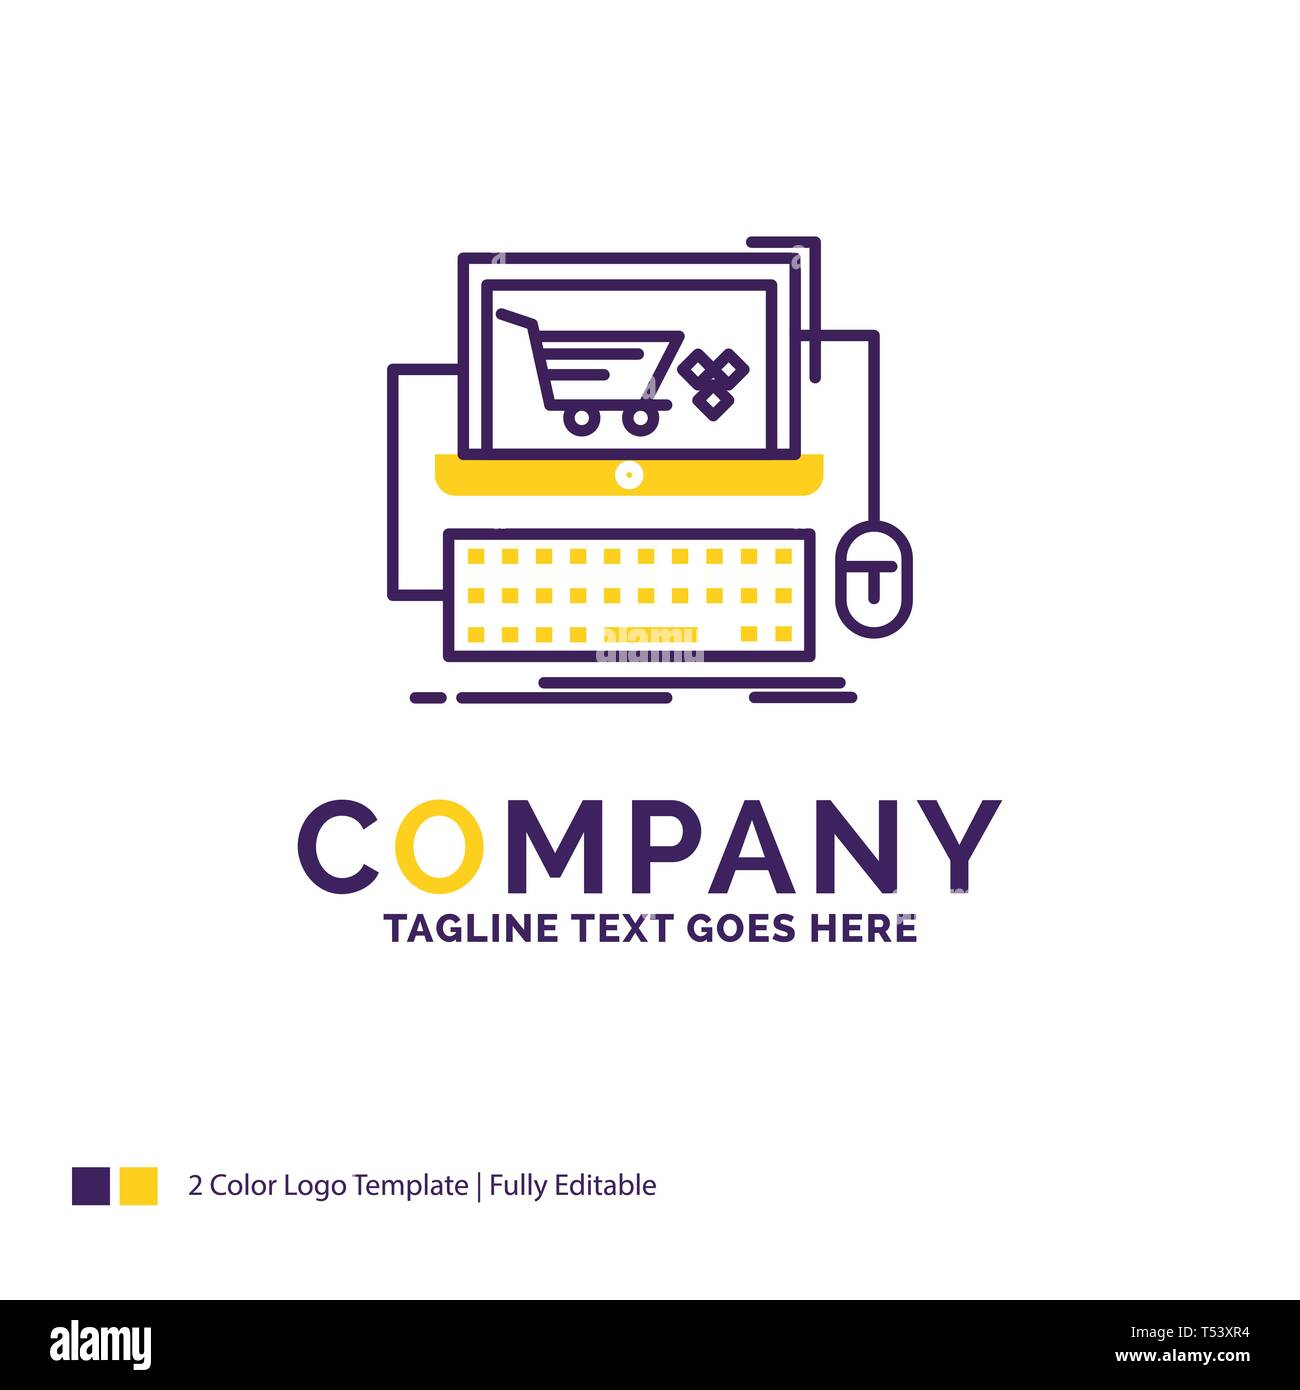 Company Name Logo Design For Cart Online Shop Store Game Purple